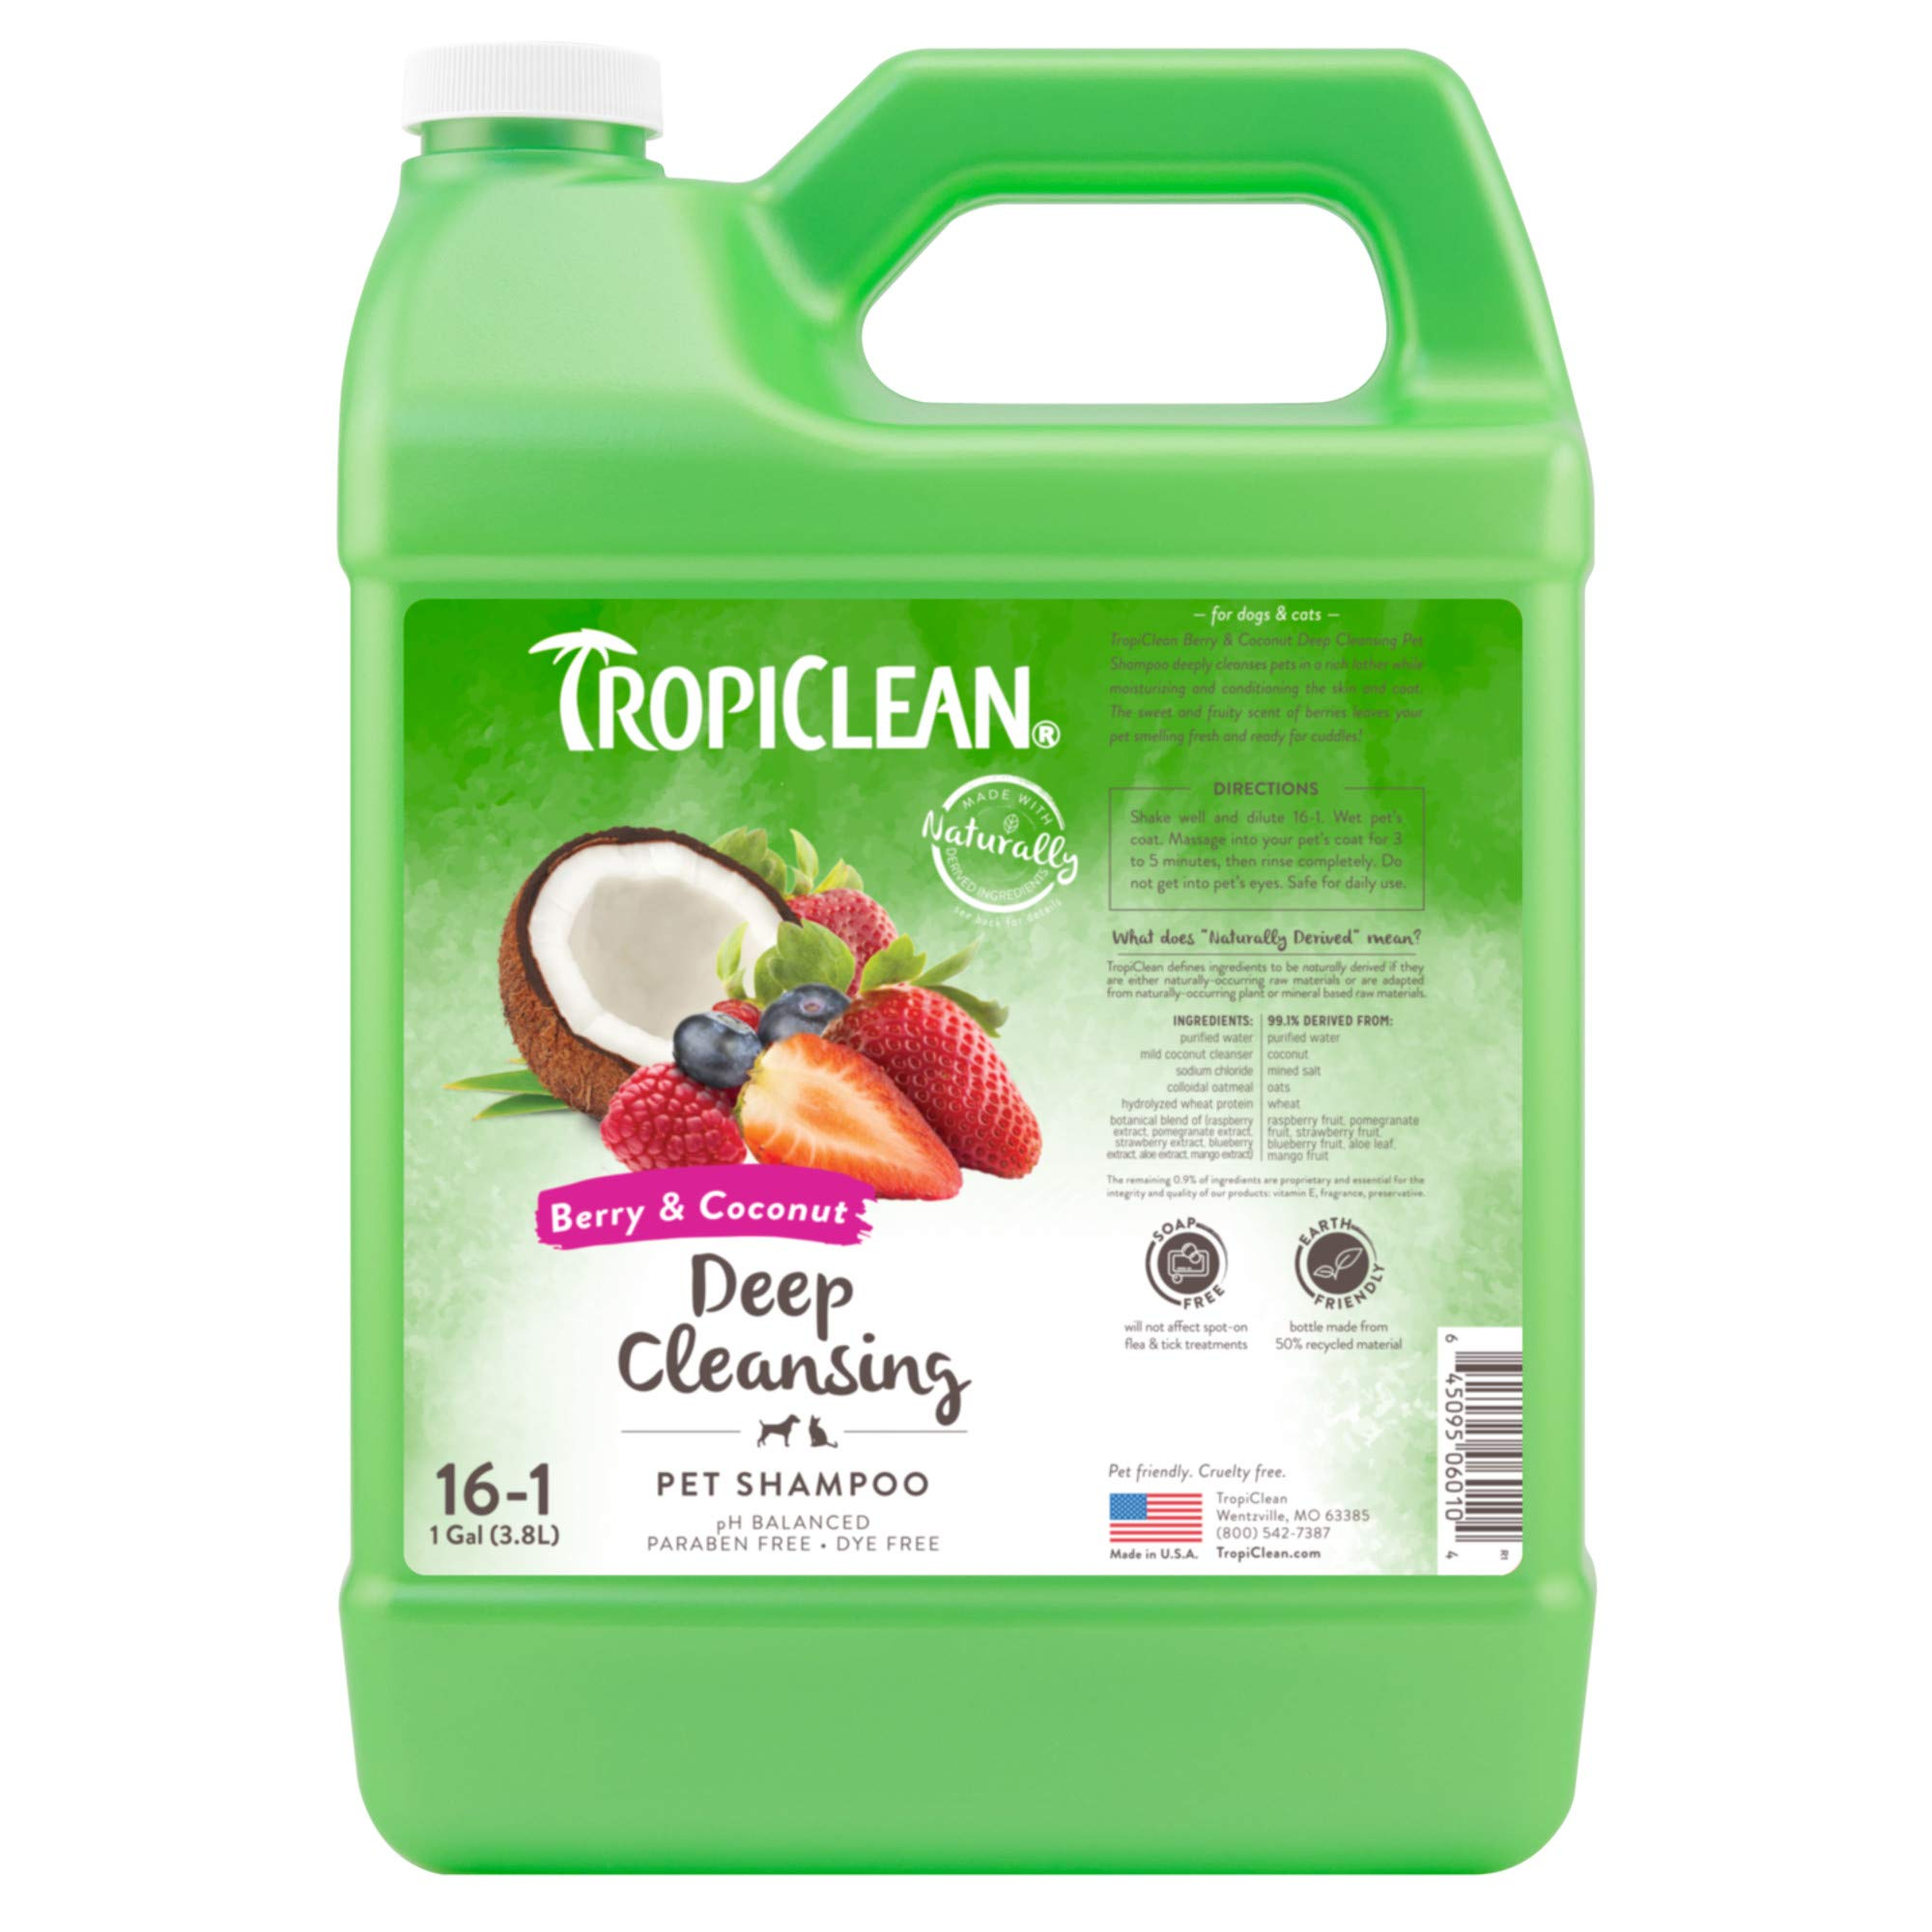 TropiClean Berry & Coconut Deep Cleansing Shampoo for Pets, 1 gal - Effective Cleansing for Smelly Dogs and Cats, Made in the USA